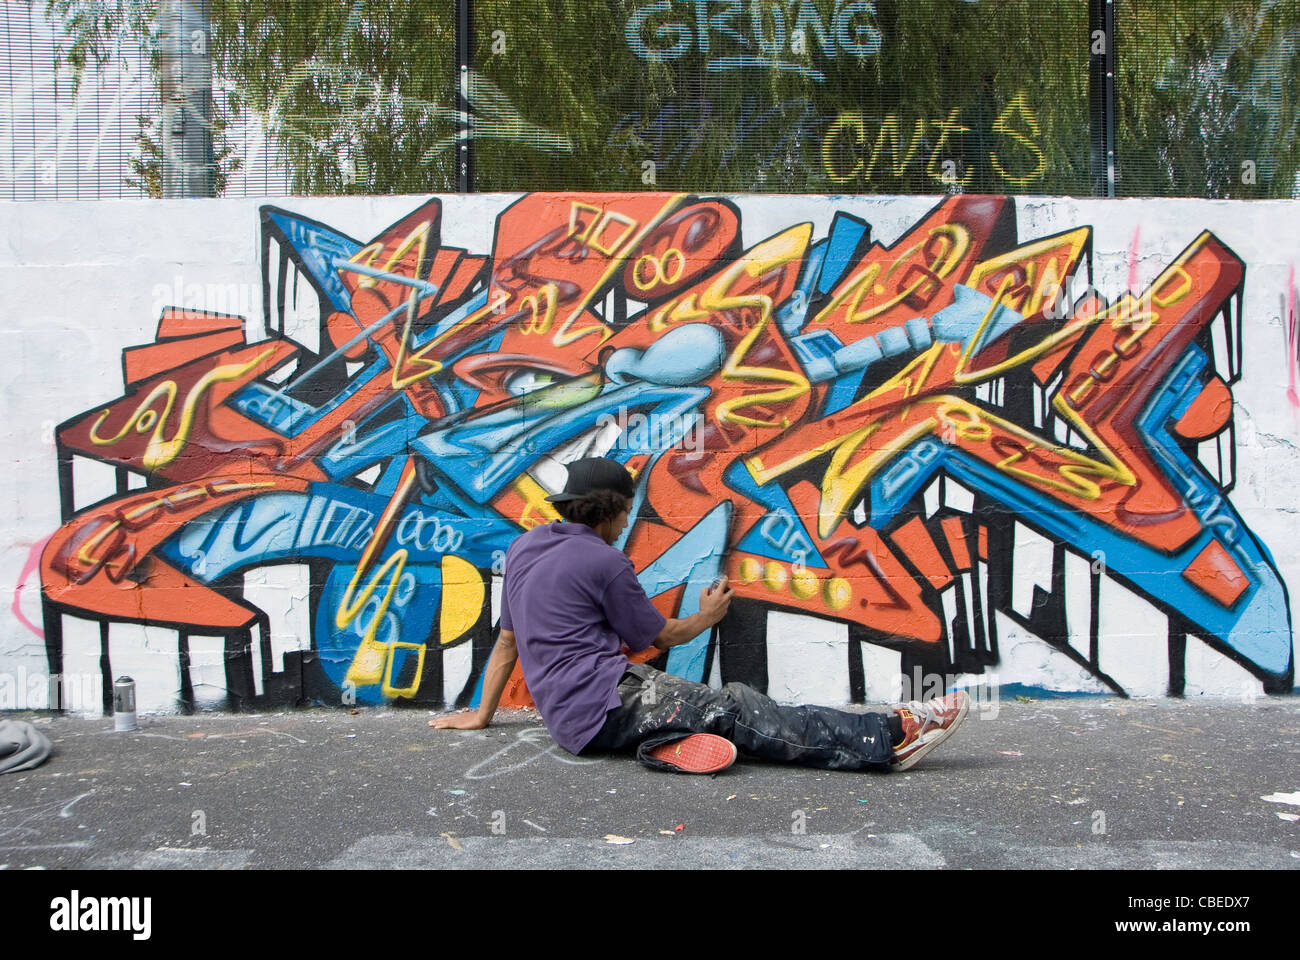 Teenage Boy Painting Abstract Graffiti Art Mural on Wall from Rear